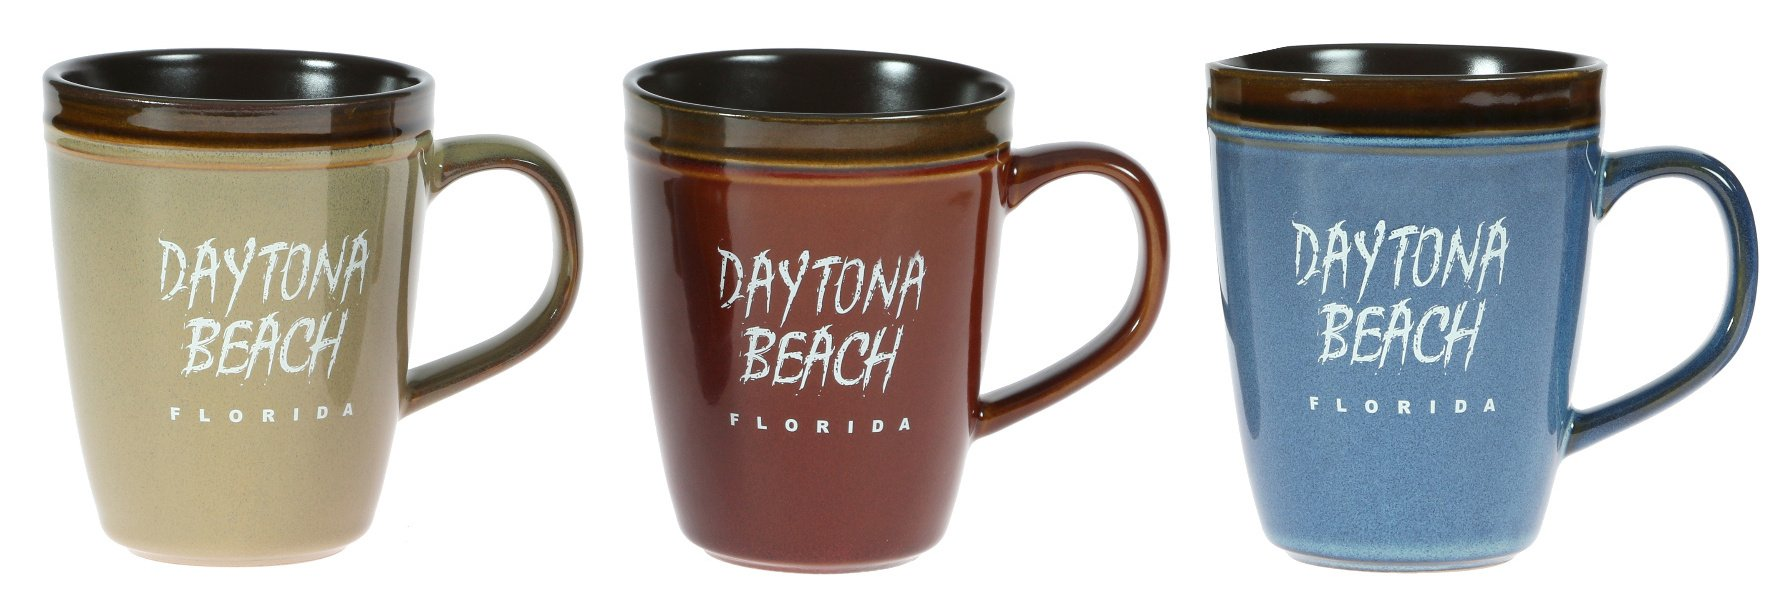 Daytona Beach Mugs